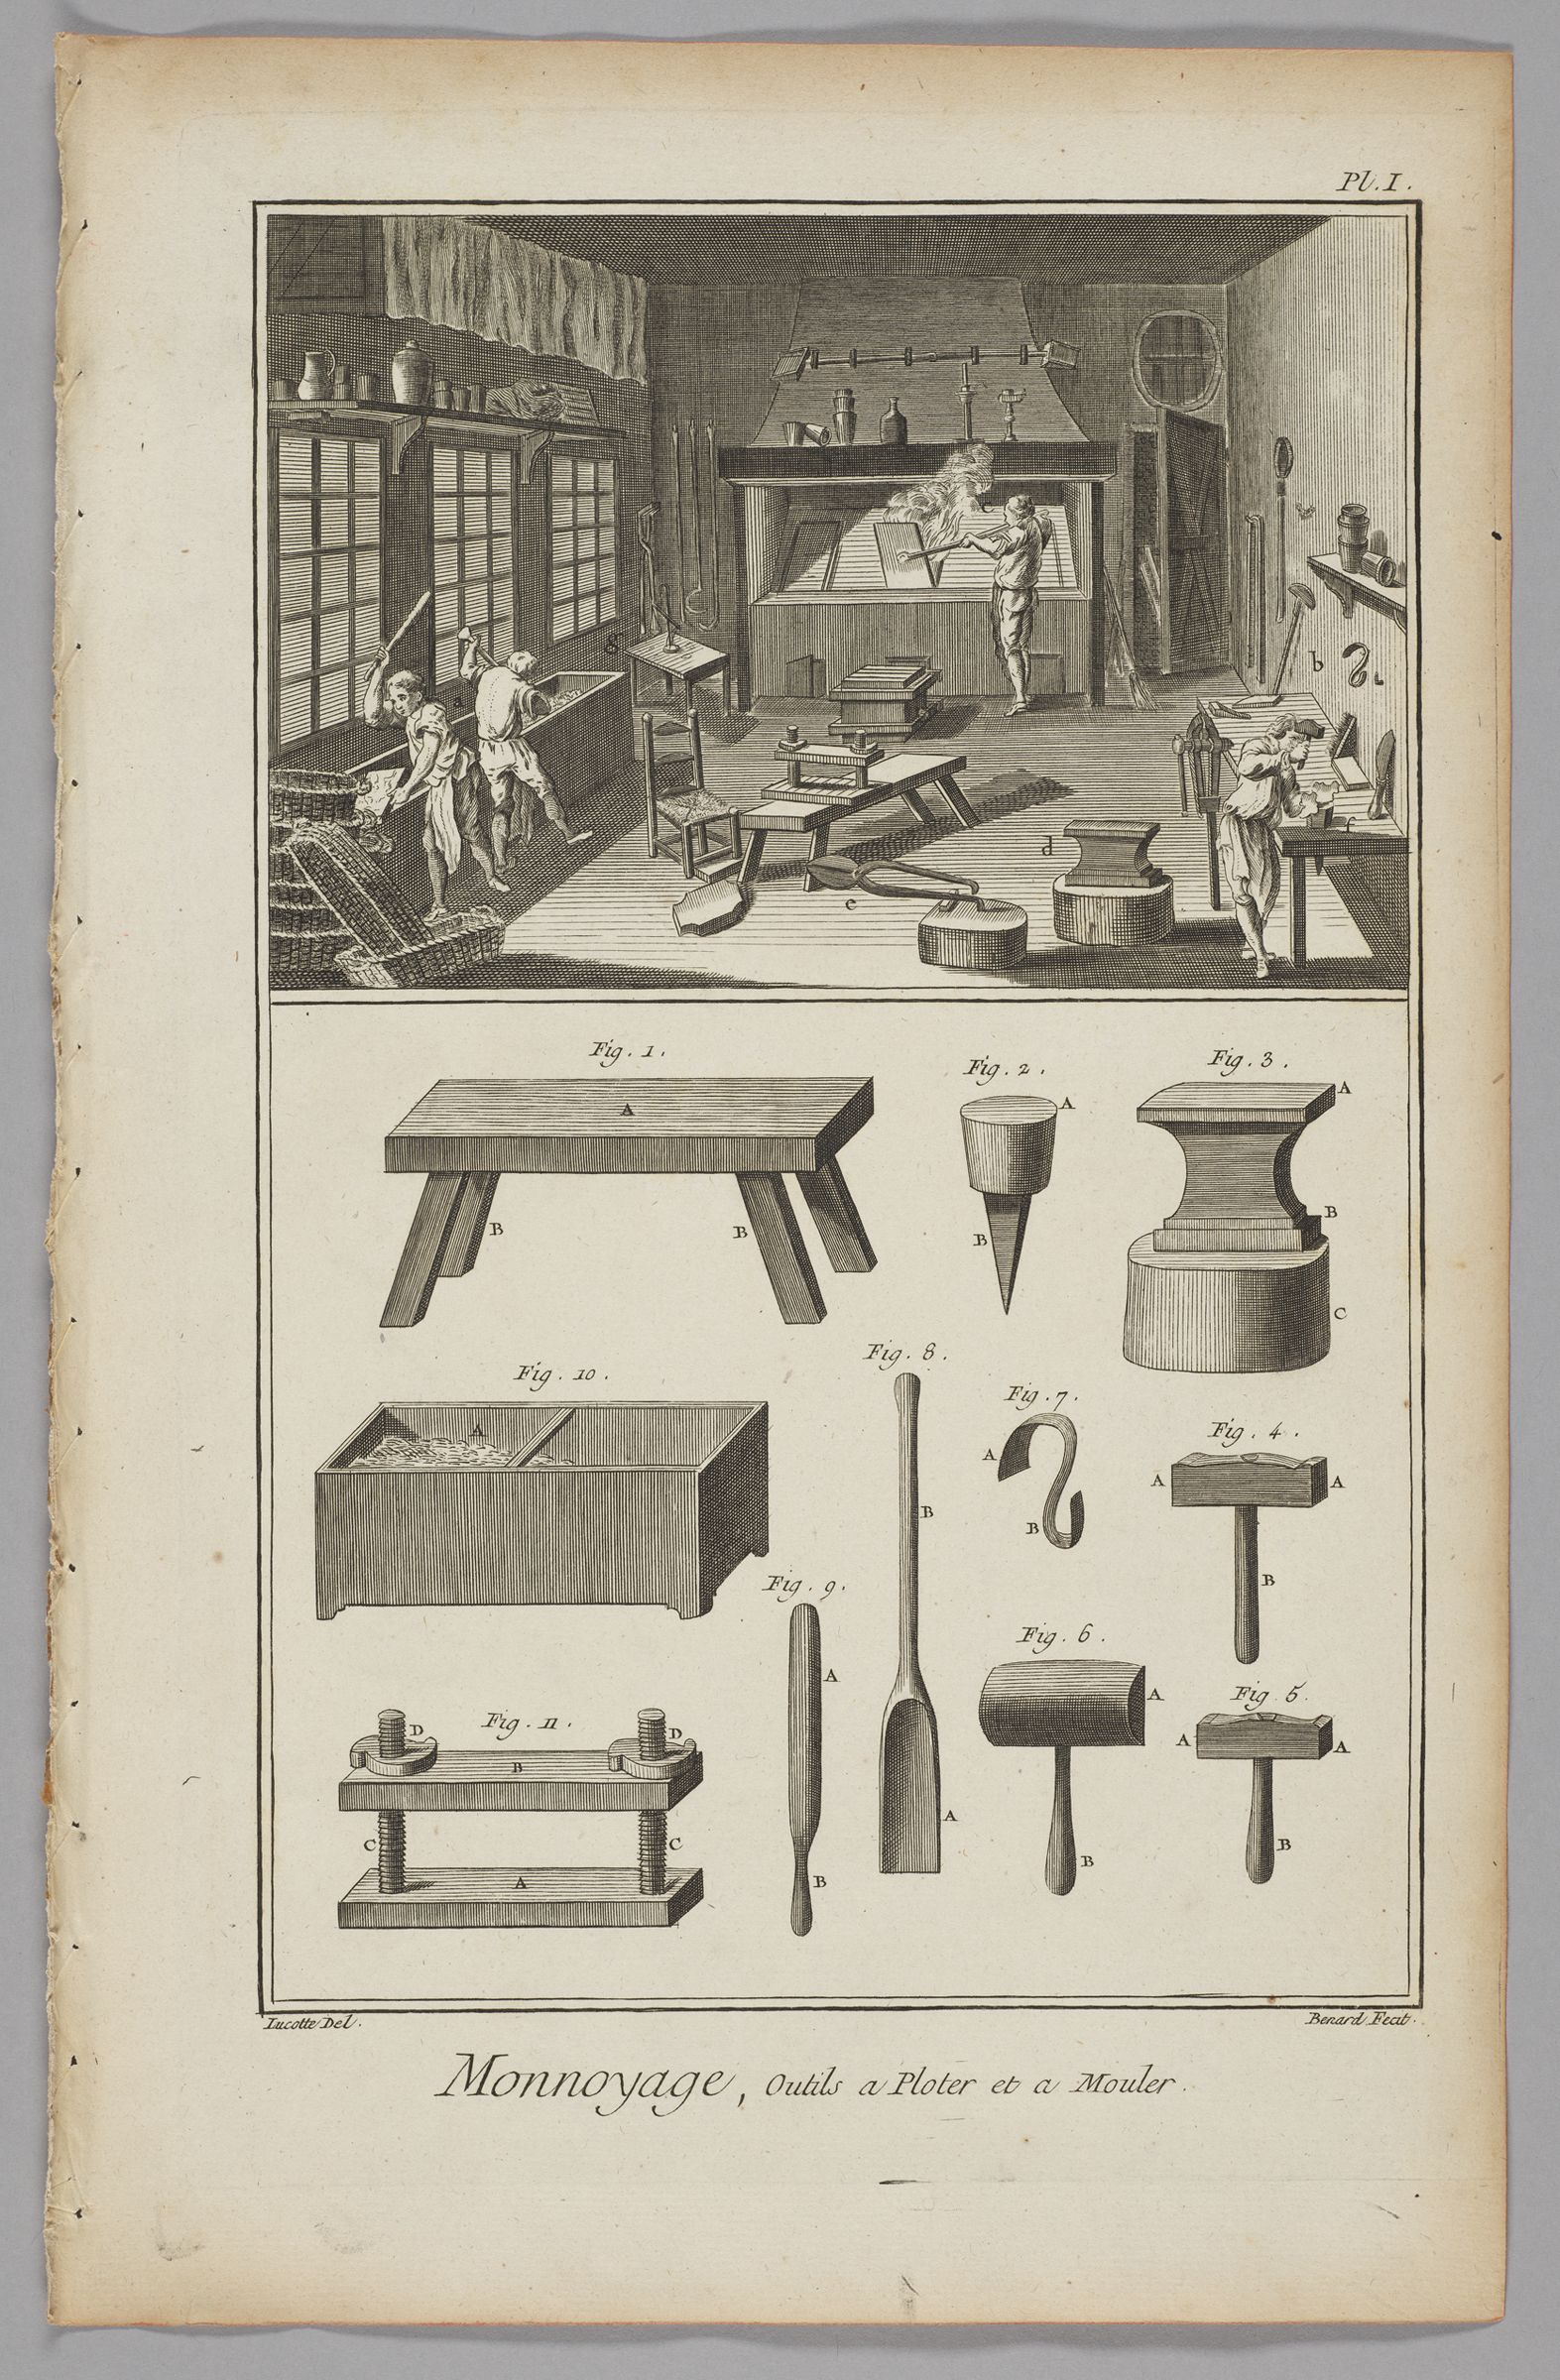 Minting, Plotting And Molding Tools